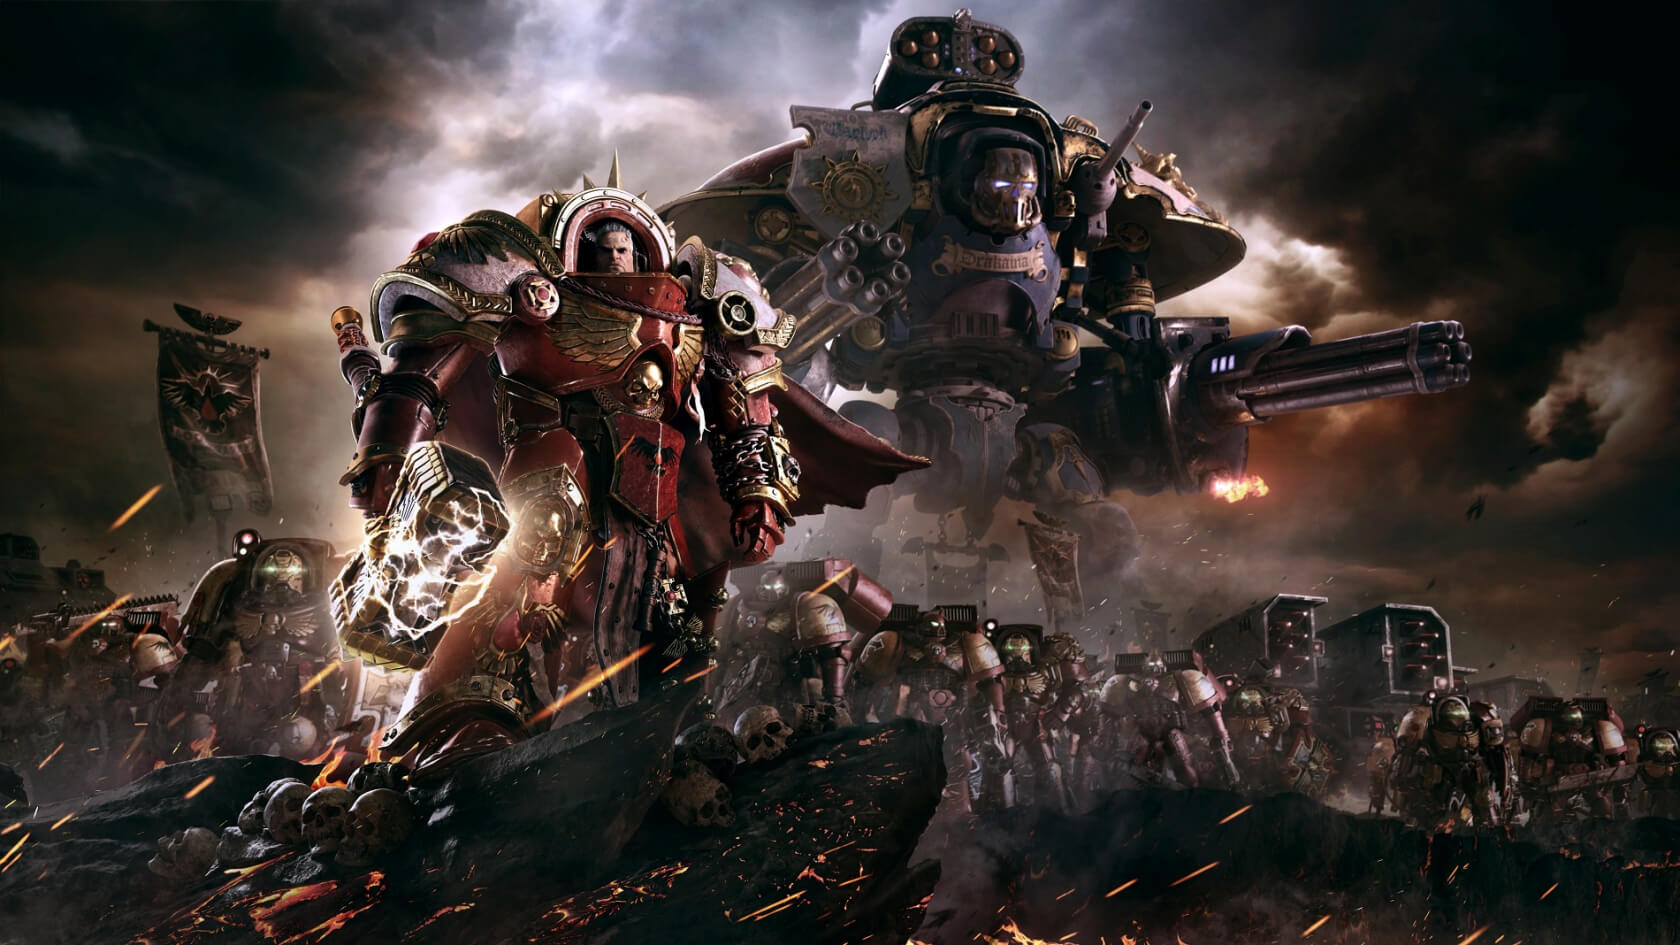 Relic ceases ongoing development of Dawn of War III due to poor sales